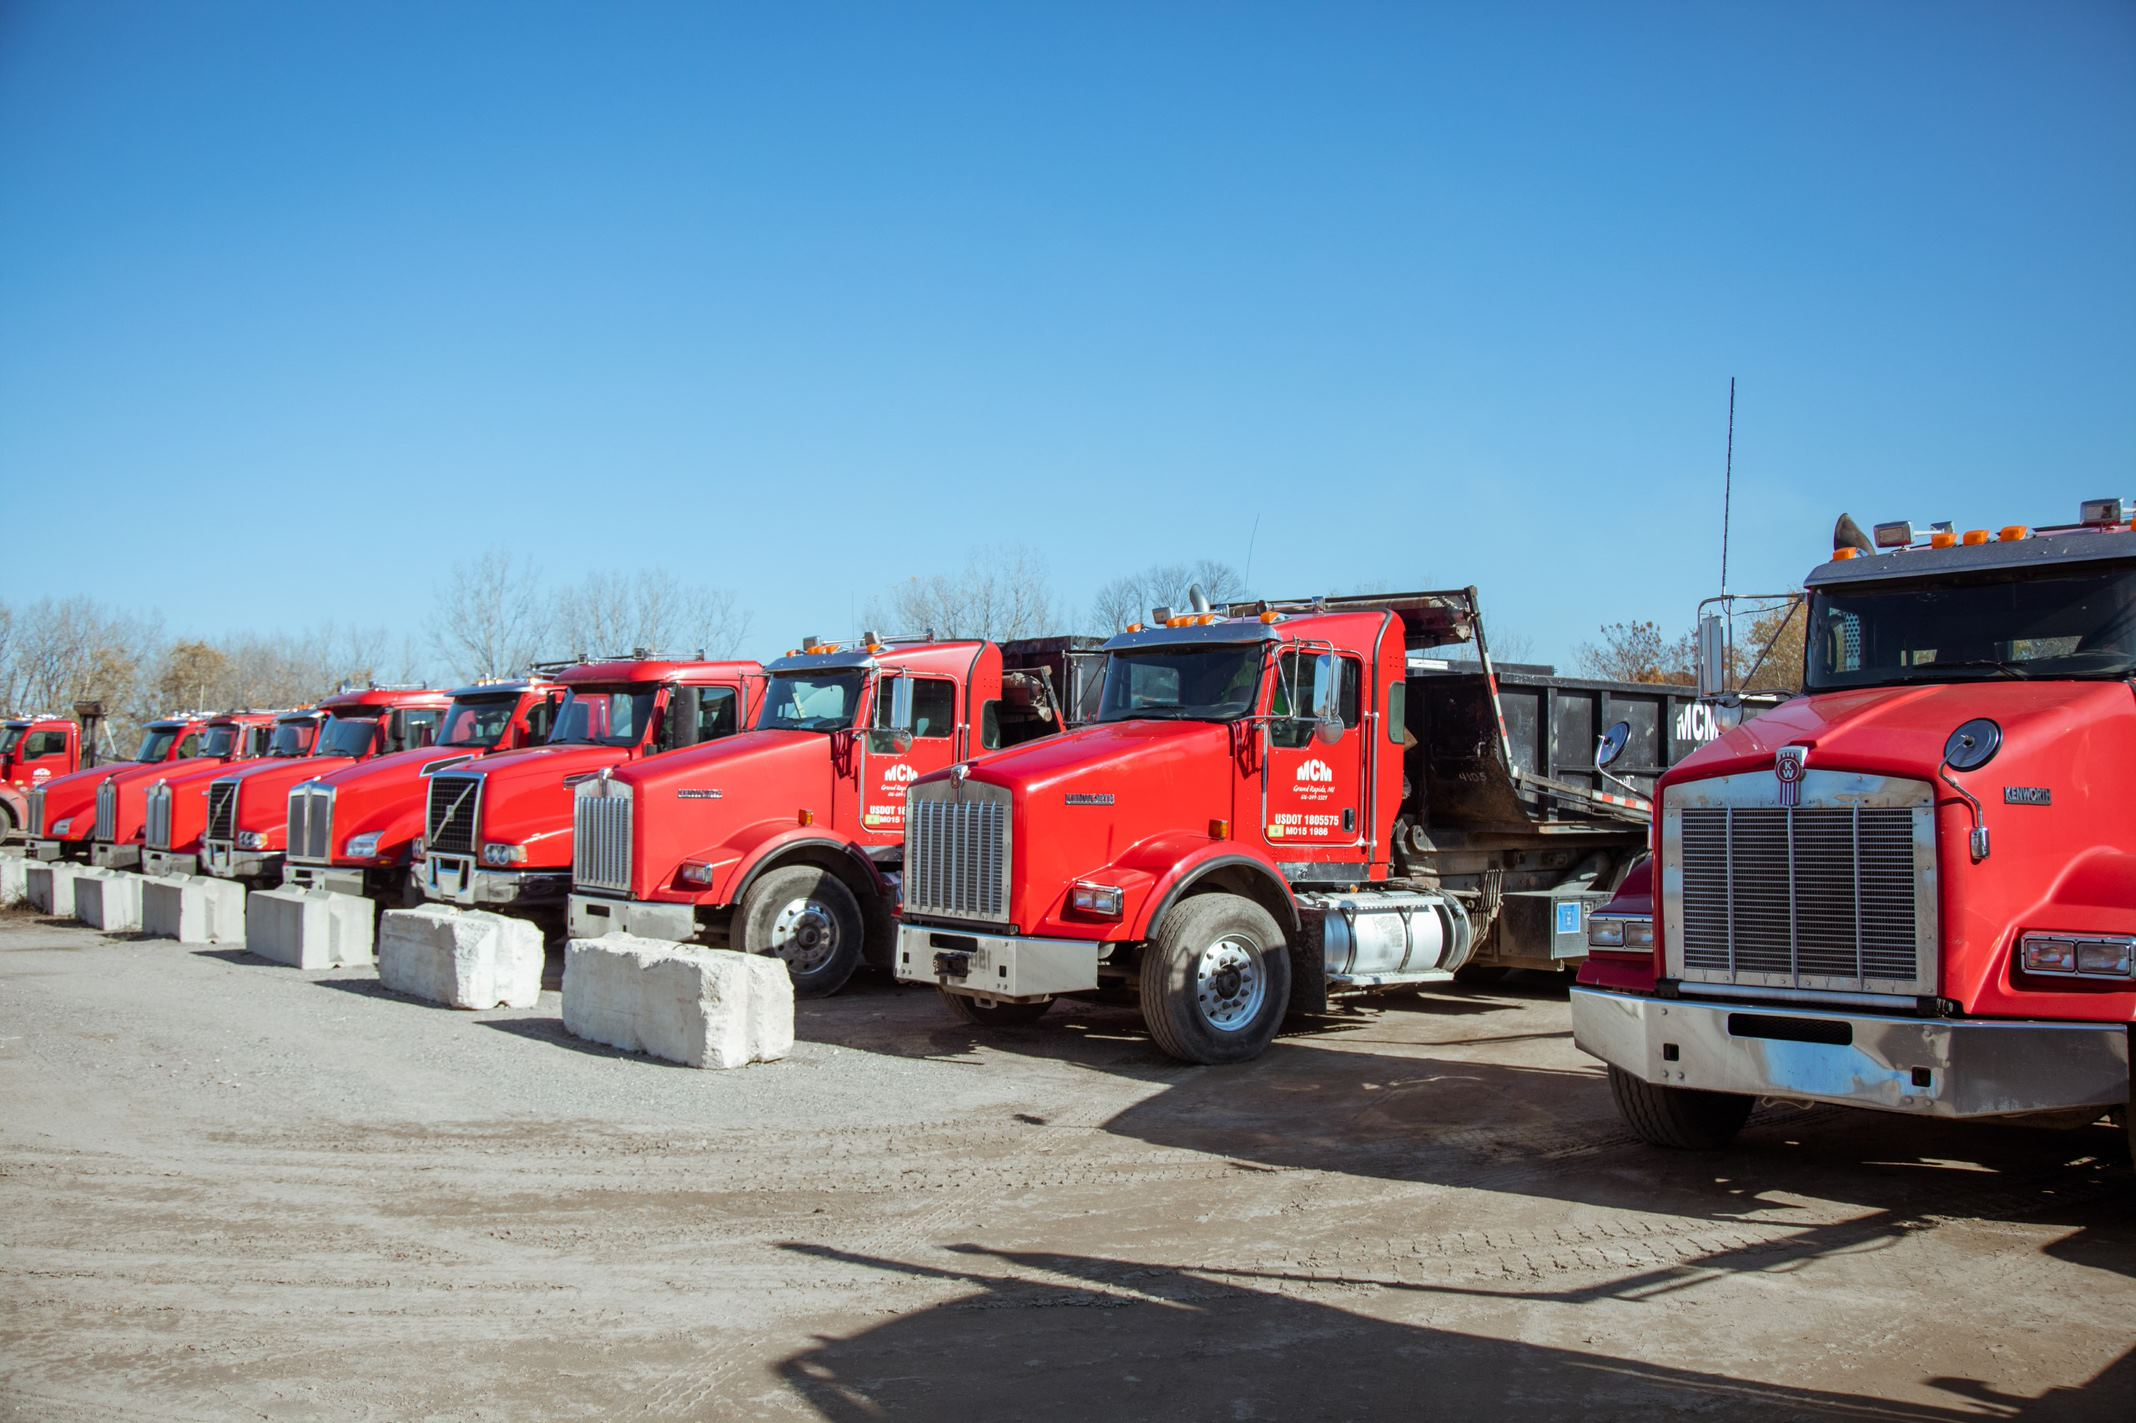 Even with MCM Disposal's roll-off operation at half its normal levels for March and April, their yearly revenue grew by 28% as a result of Starlight.